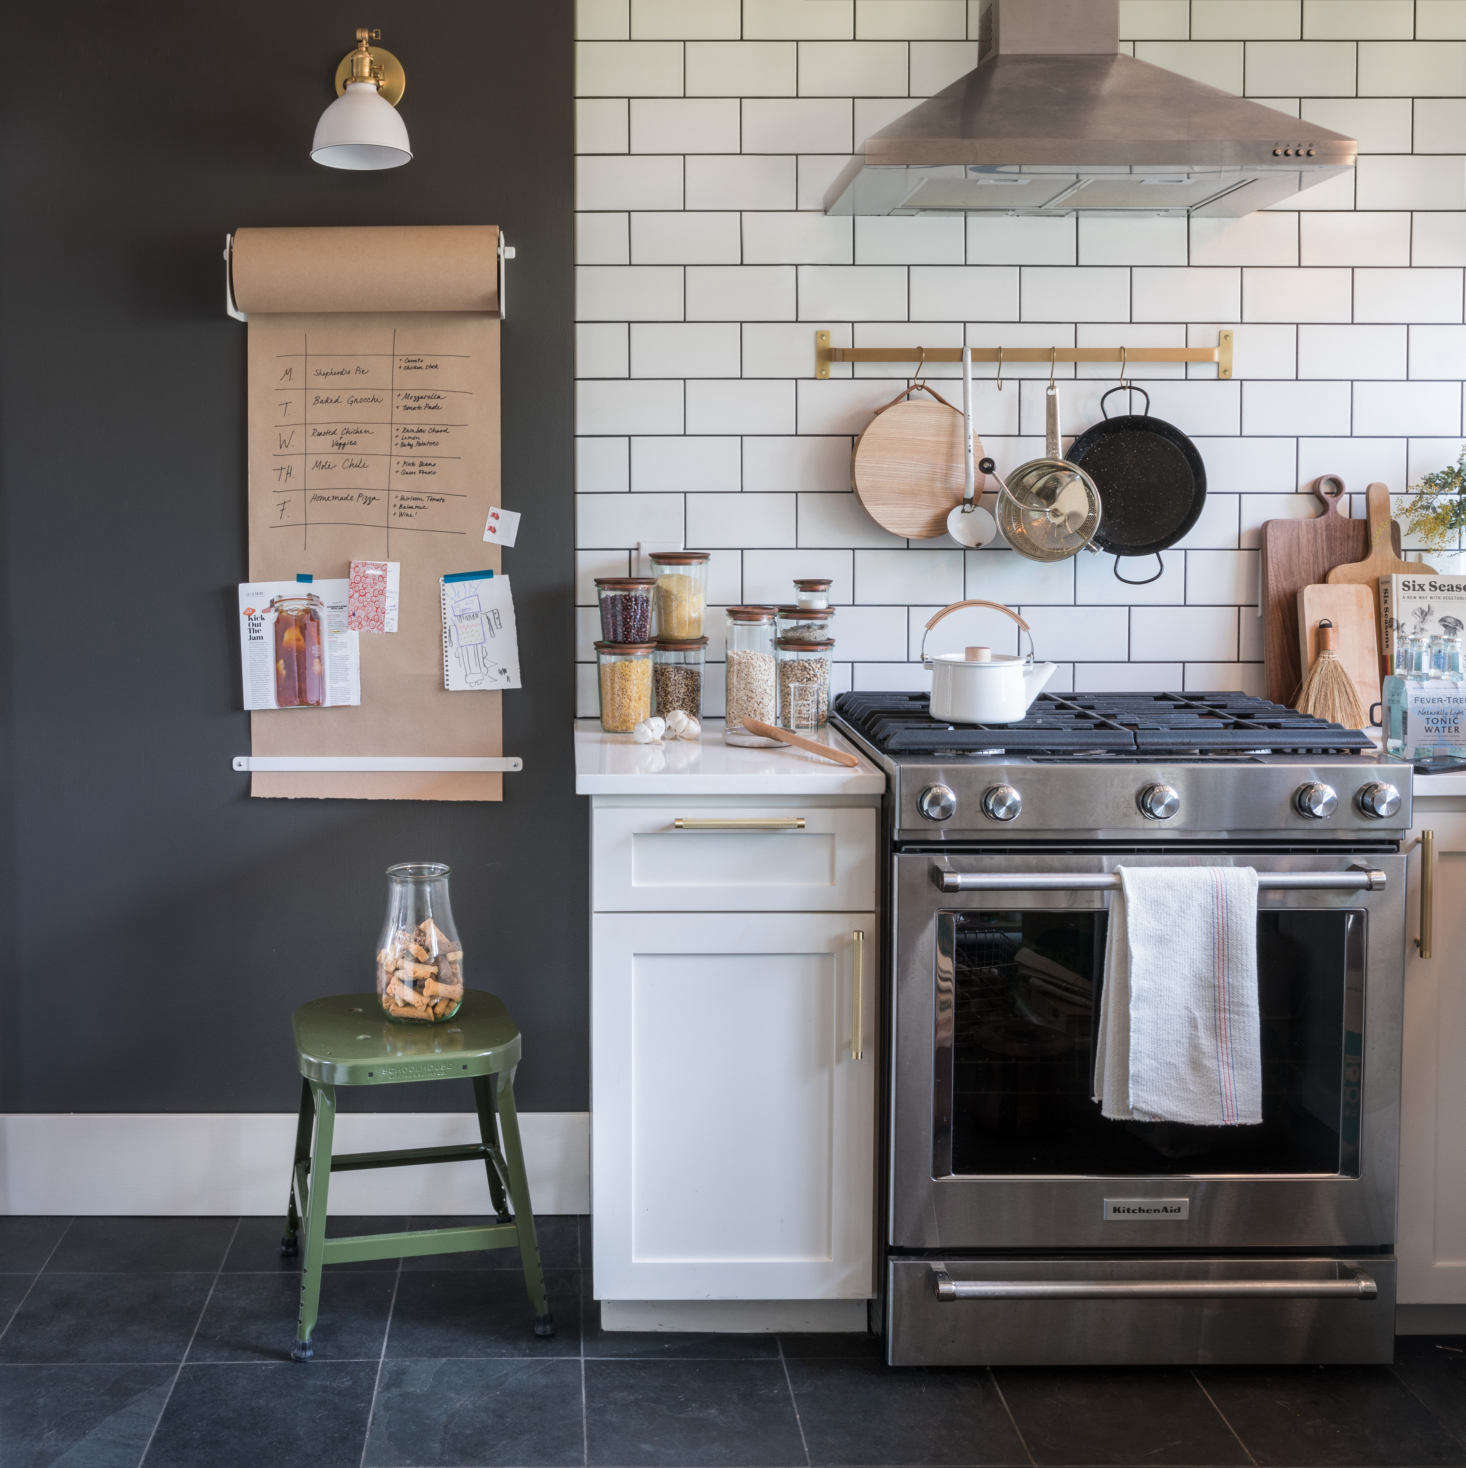 A subway tile kitchen with a Wall-Mounted Paper Holder and brass Utility Rail from Schoolhouse.